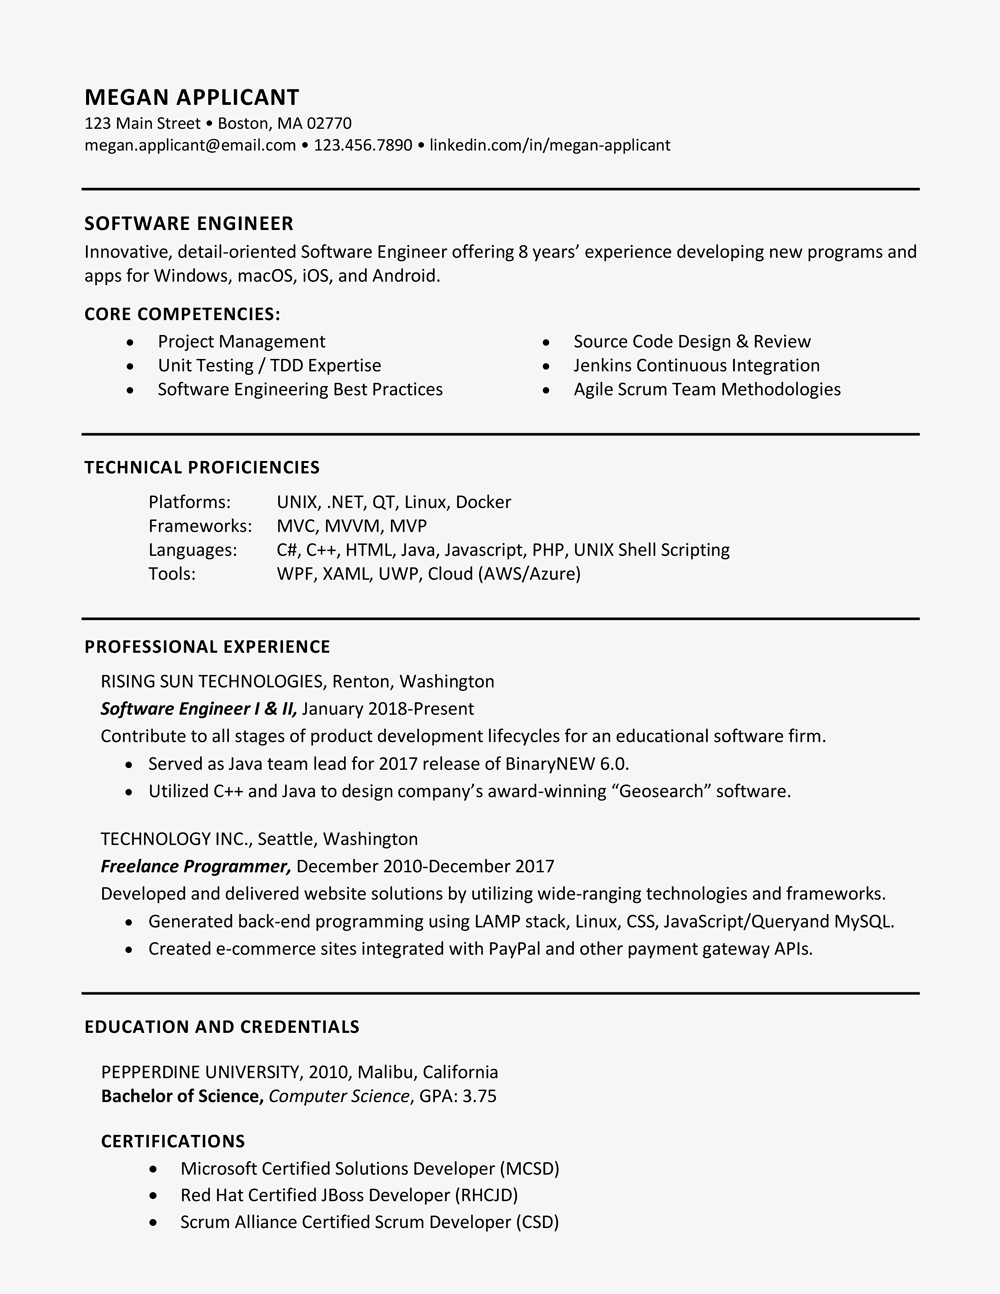 Describe Your Computer Skills - the Best Skills to Include On A Resume